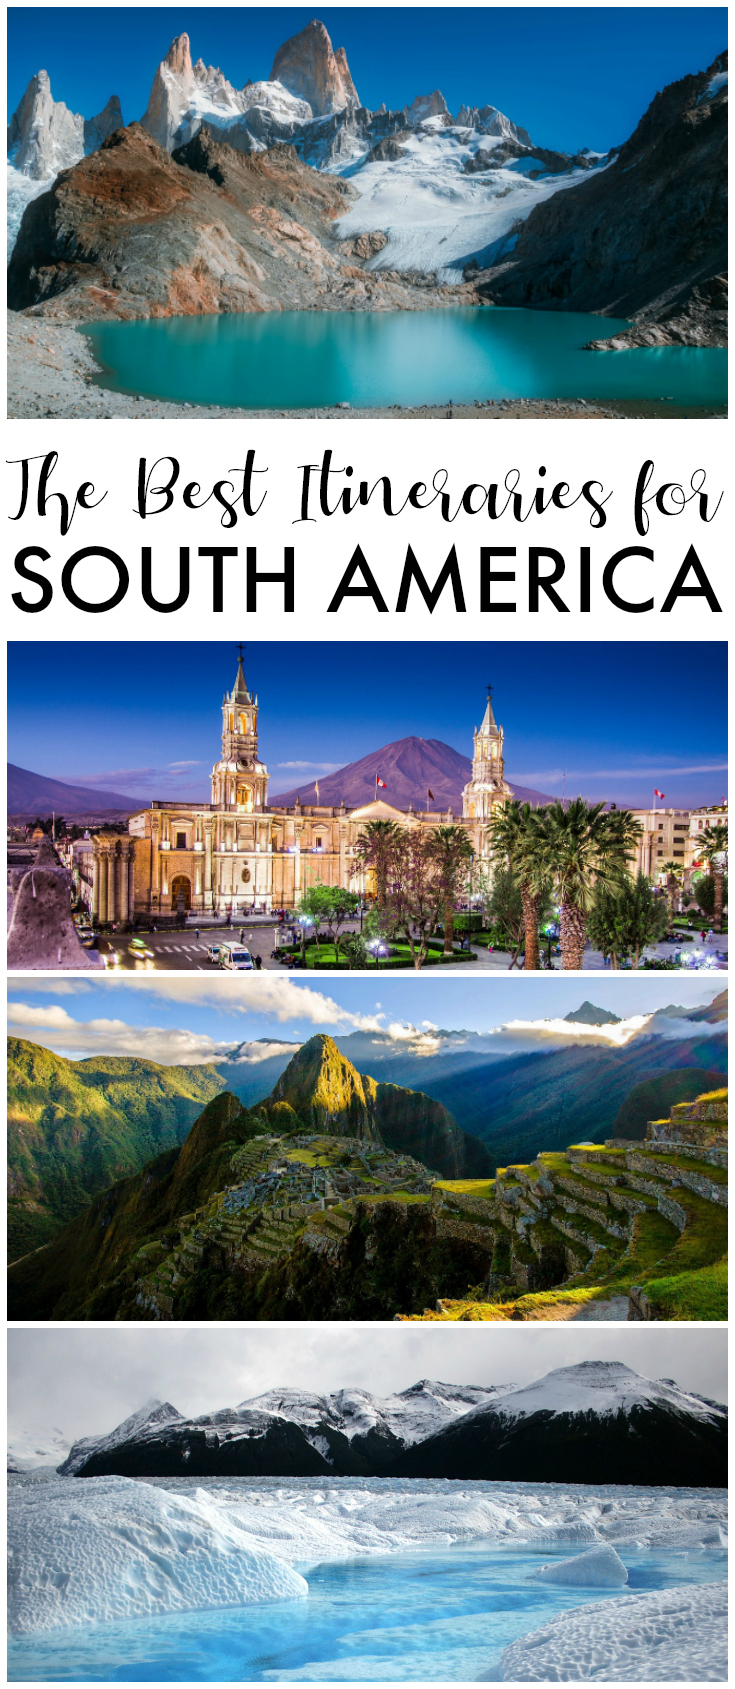 the best itineraries for South America